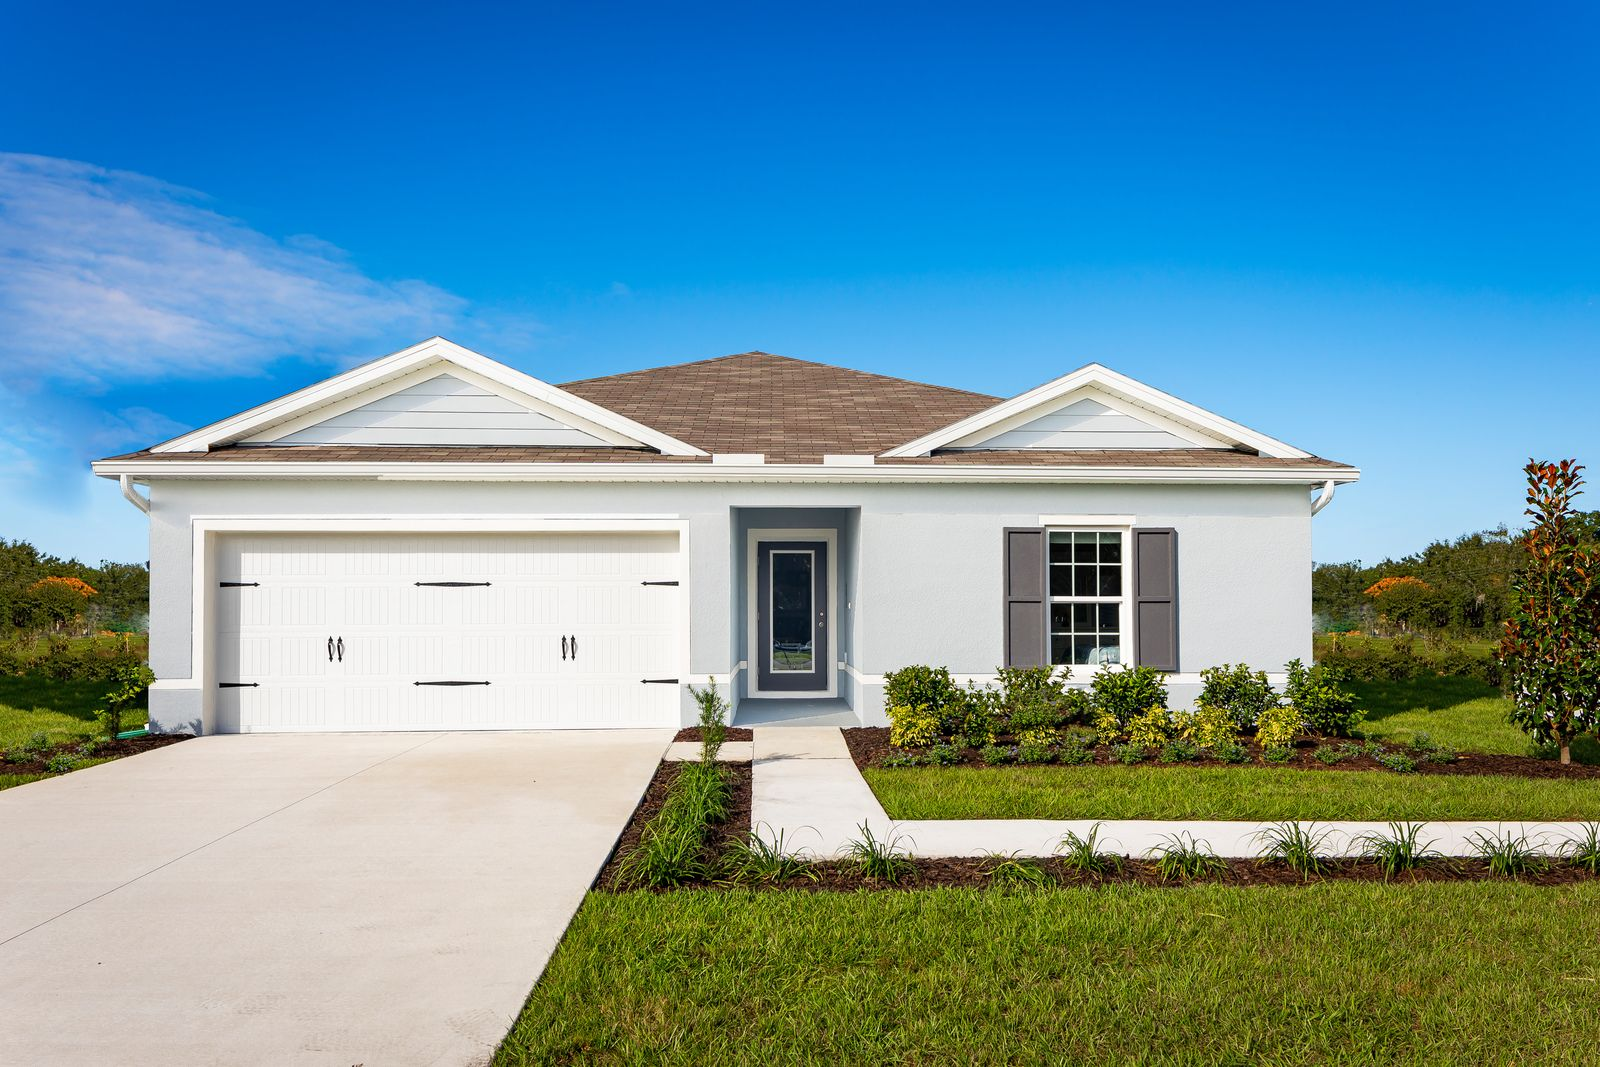 Welcome to Eagle Landing in Winter Haven, FL:Where affordability meets lakeside living. Close to both Tampa and Orlando while conveniently close to US 27. NO CDD & Low HOA. From the low $200s. Schedule a visit today! Se habla Español.